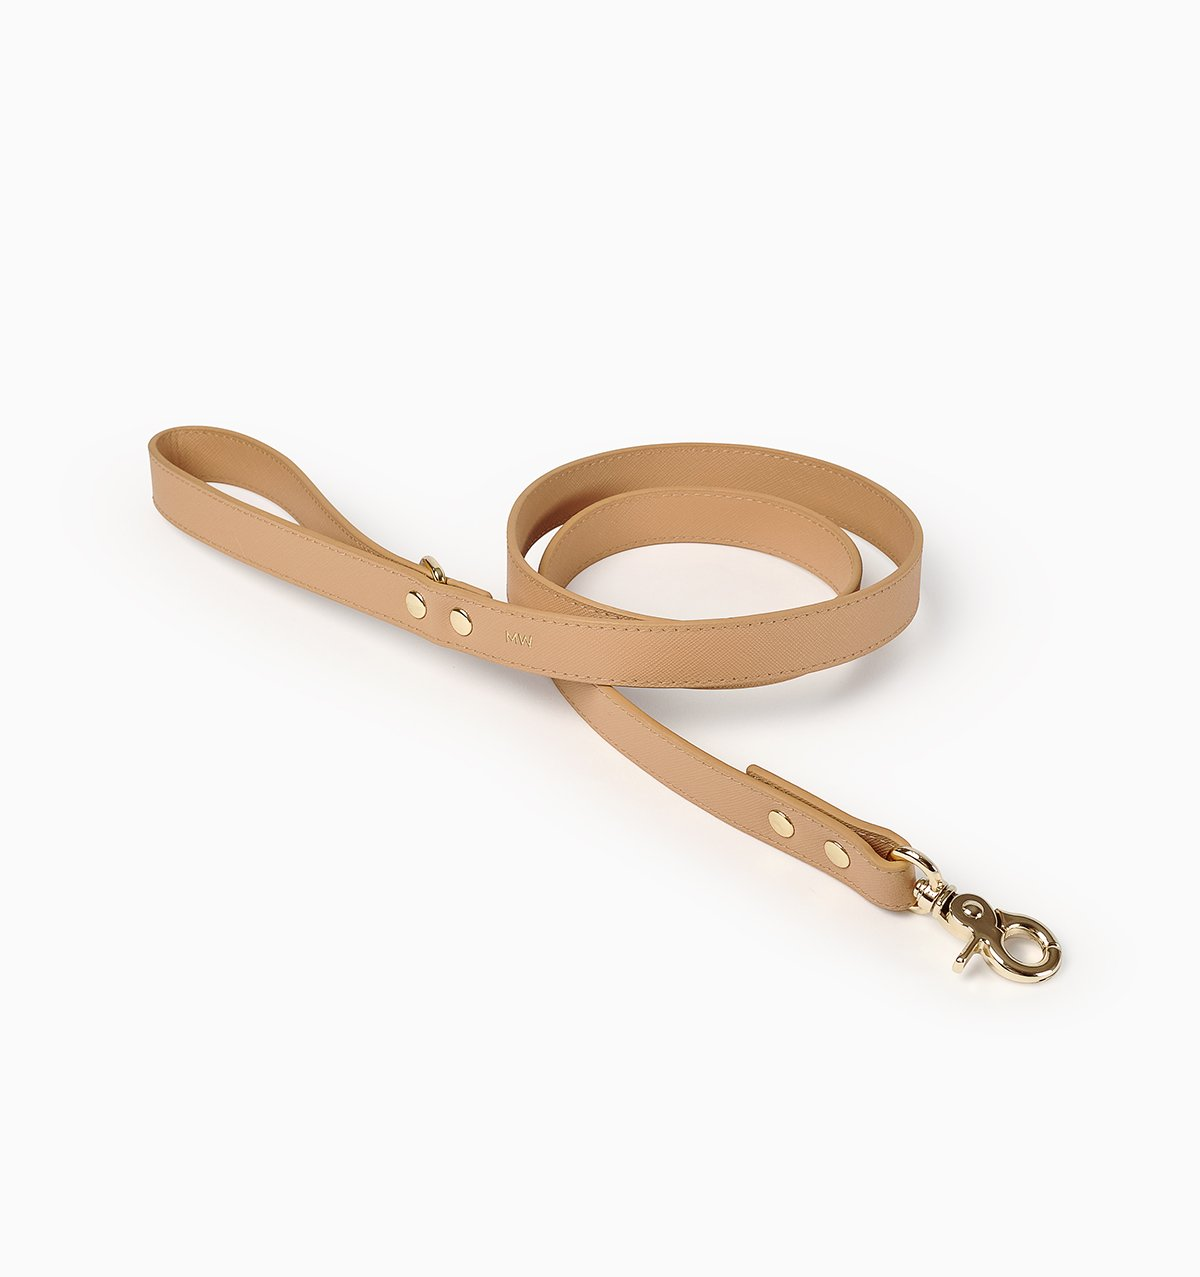 PUP LEATHER LEASH // TAN